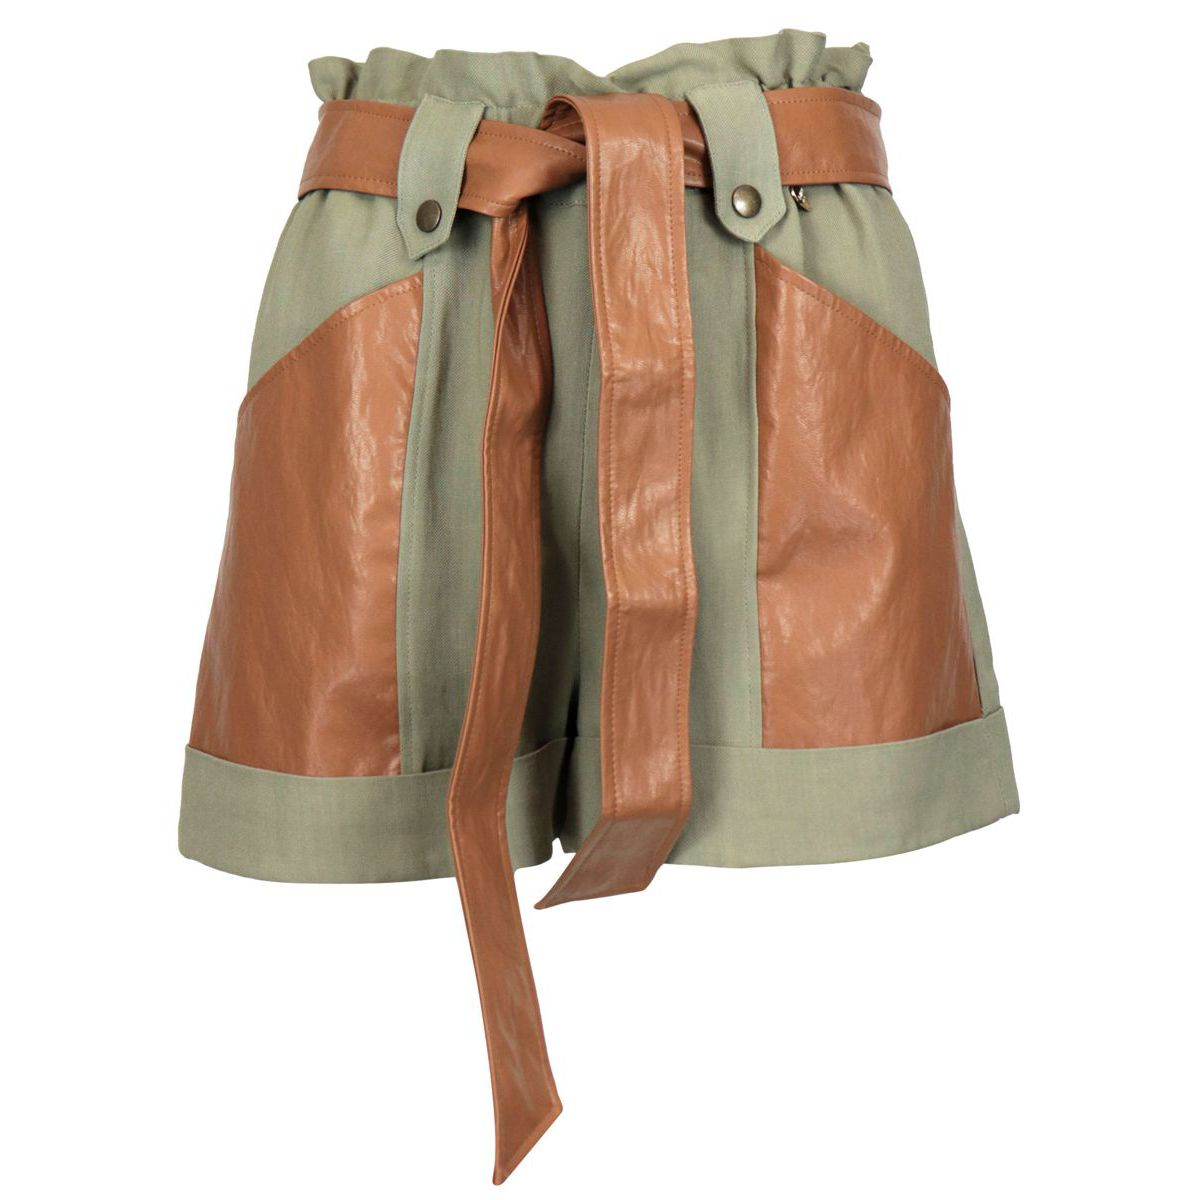 Linen and viscose canvas shorts with pockets and belt in imitation leather Olive Twin-Set